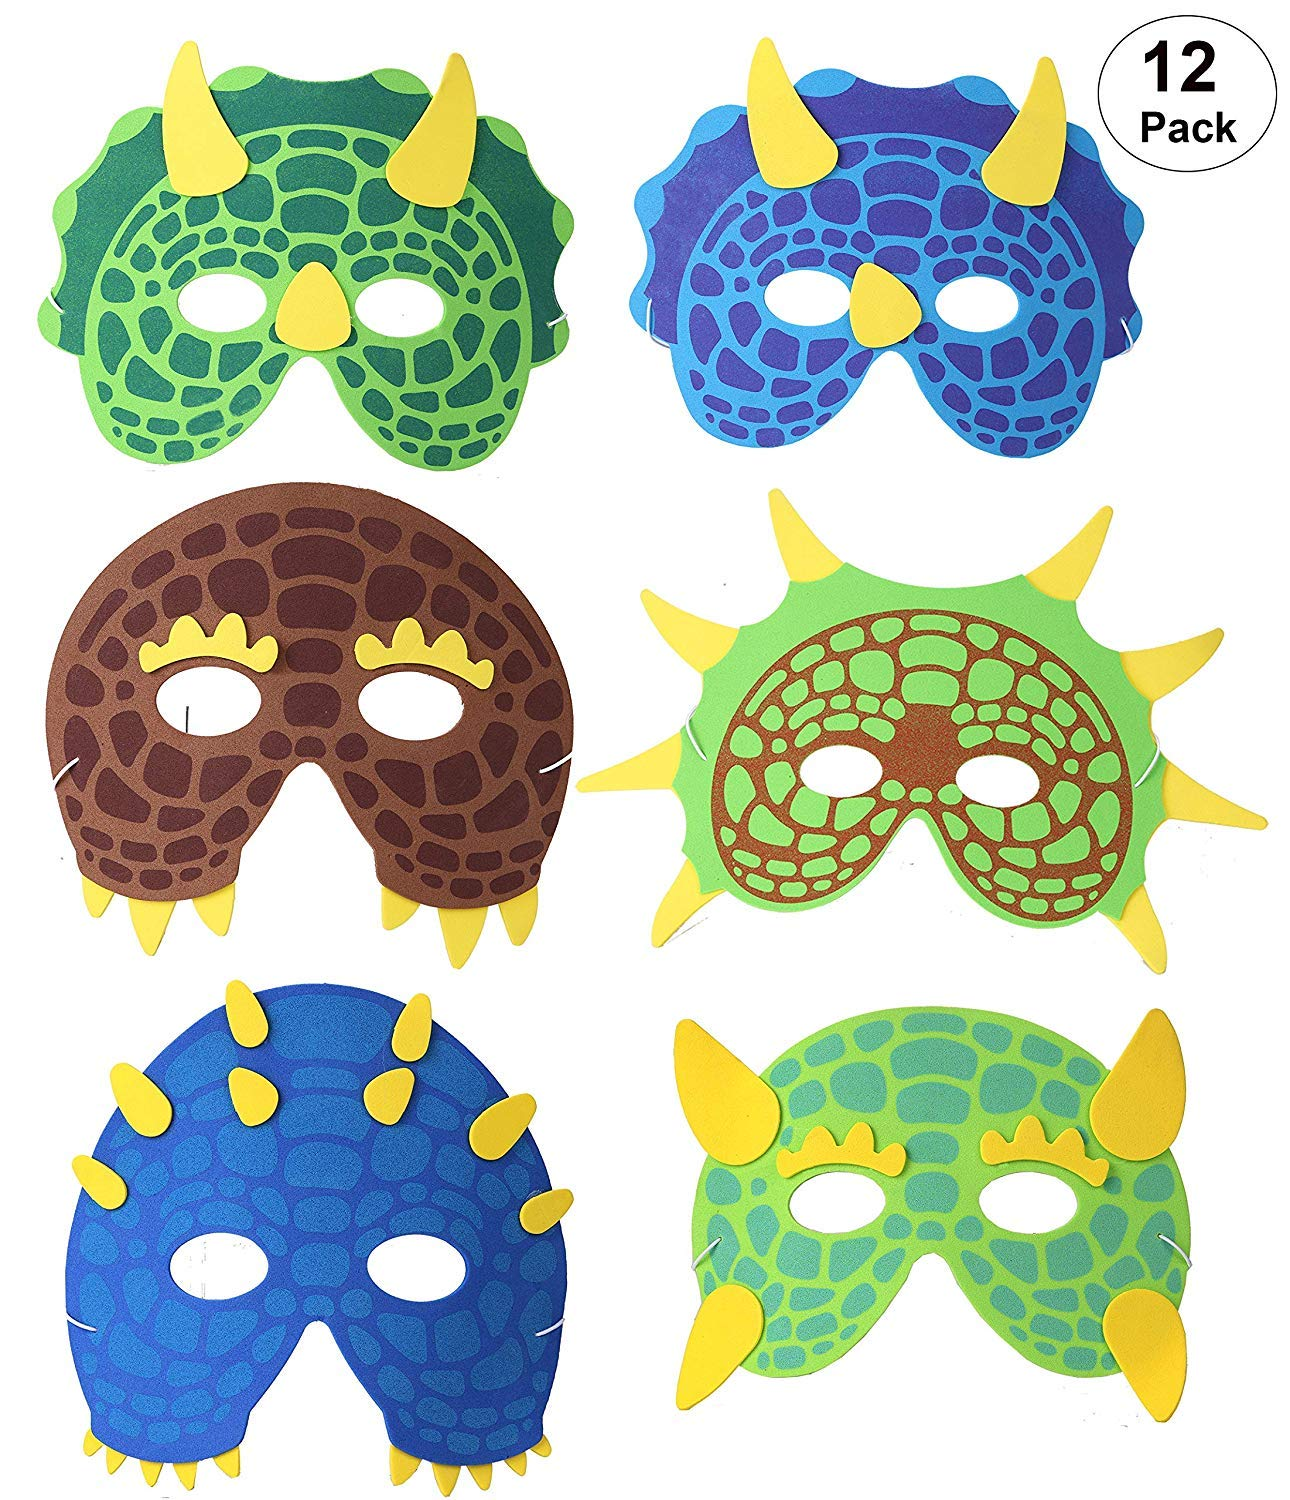 OOTSR Dinosaur Mask 12 Pack for Kids Foam Masks for Dinosaur Birthday Party Supplies Halloween Party Favors with Elastic Strap